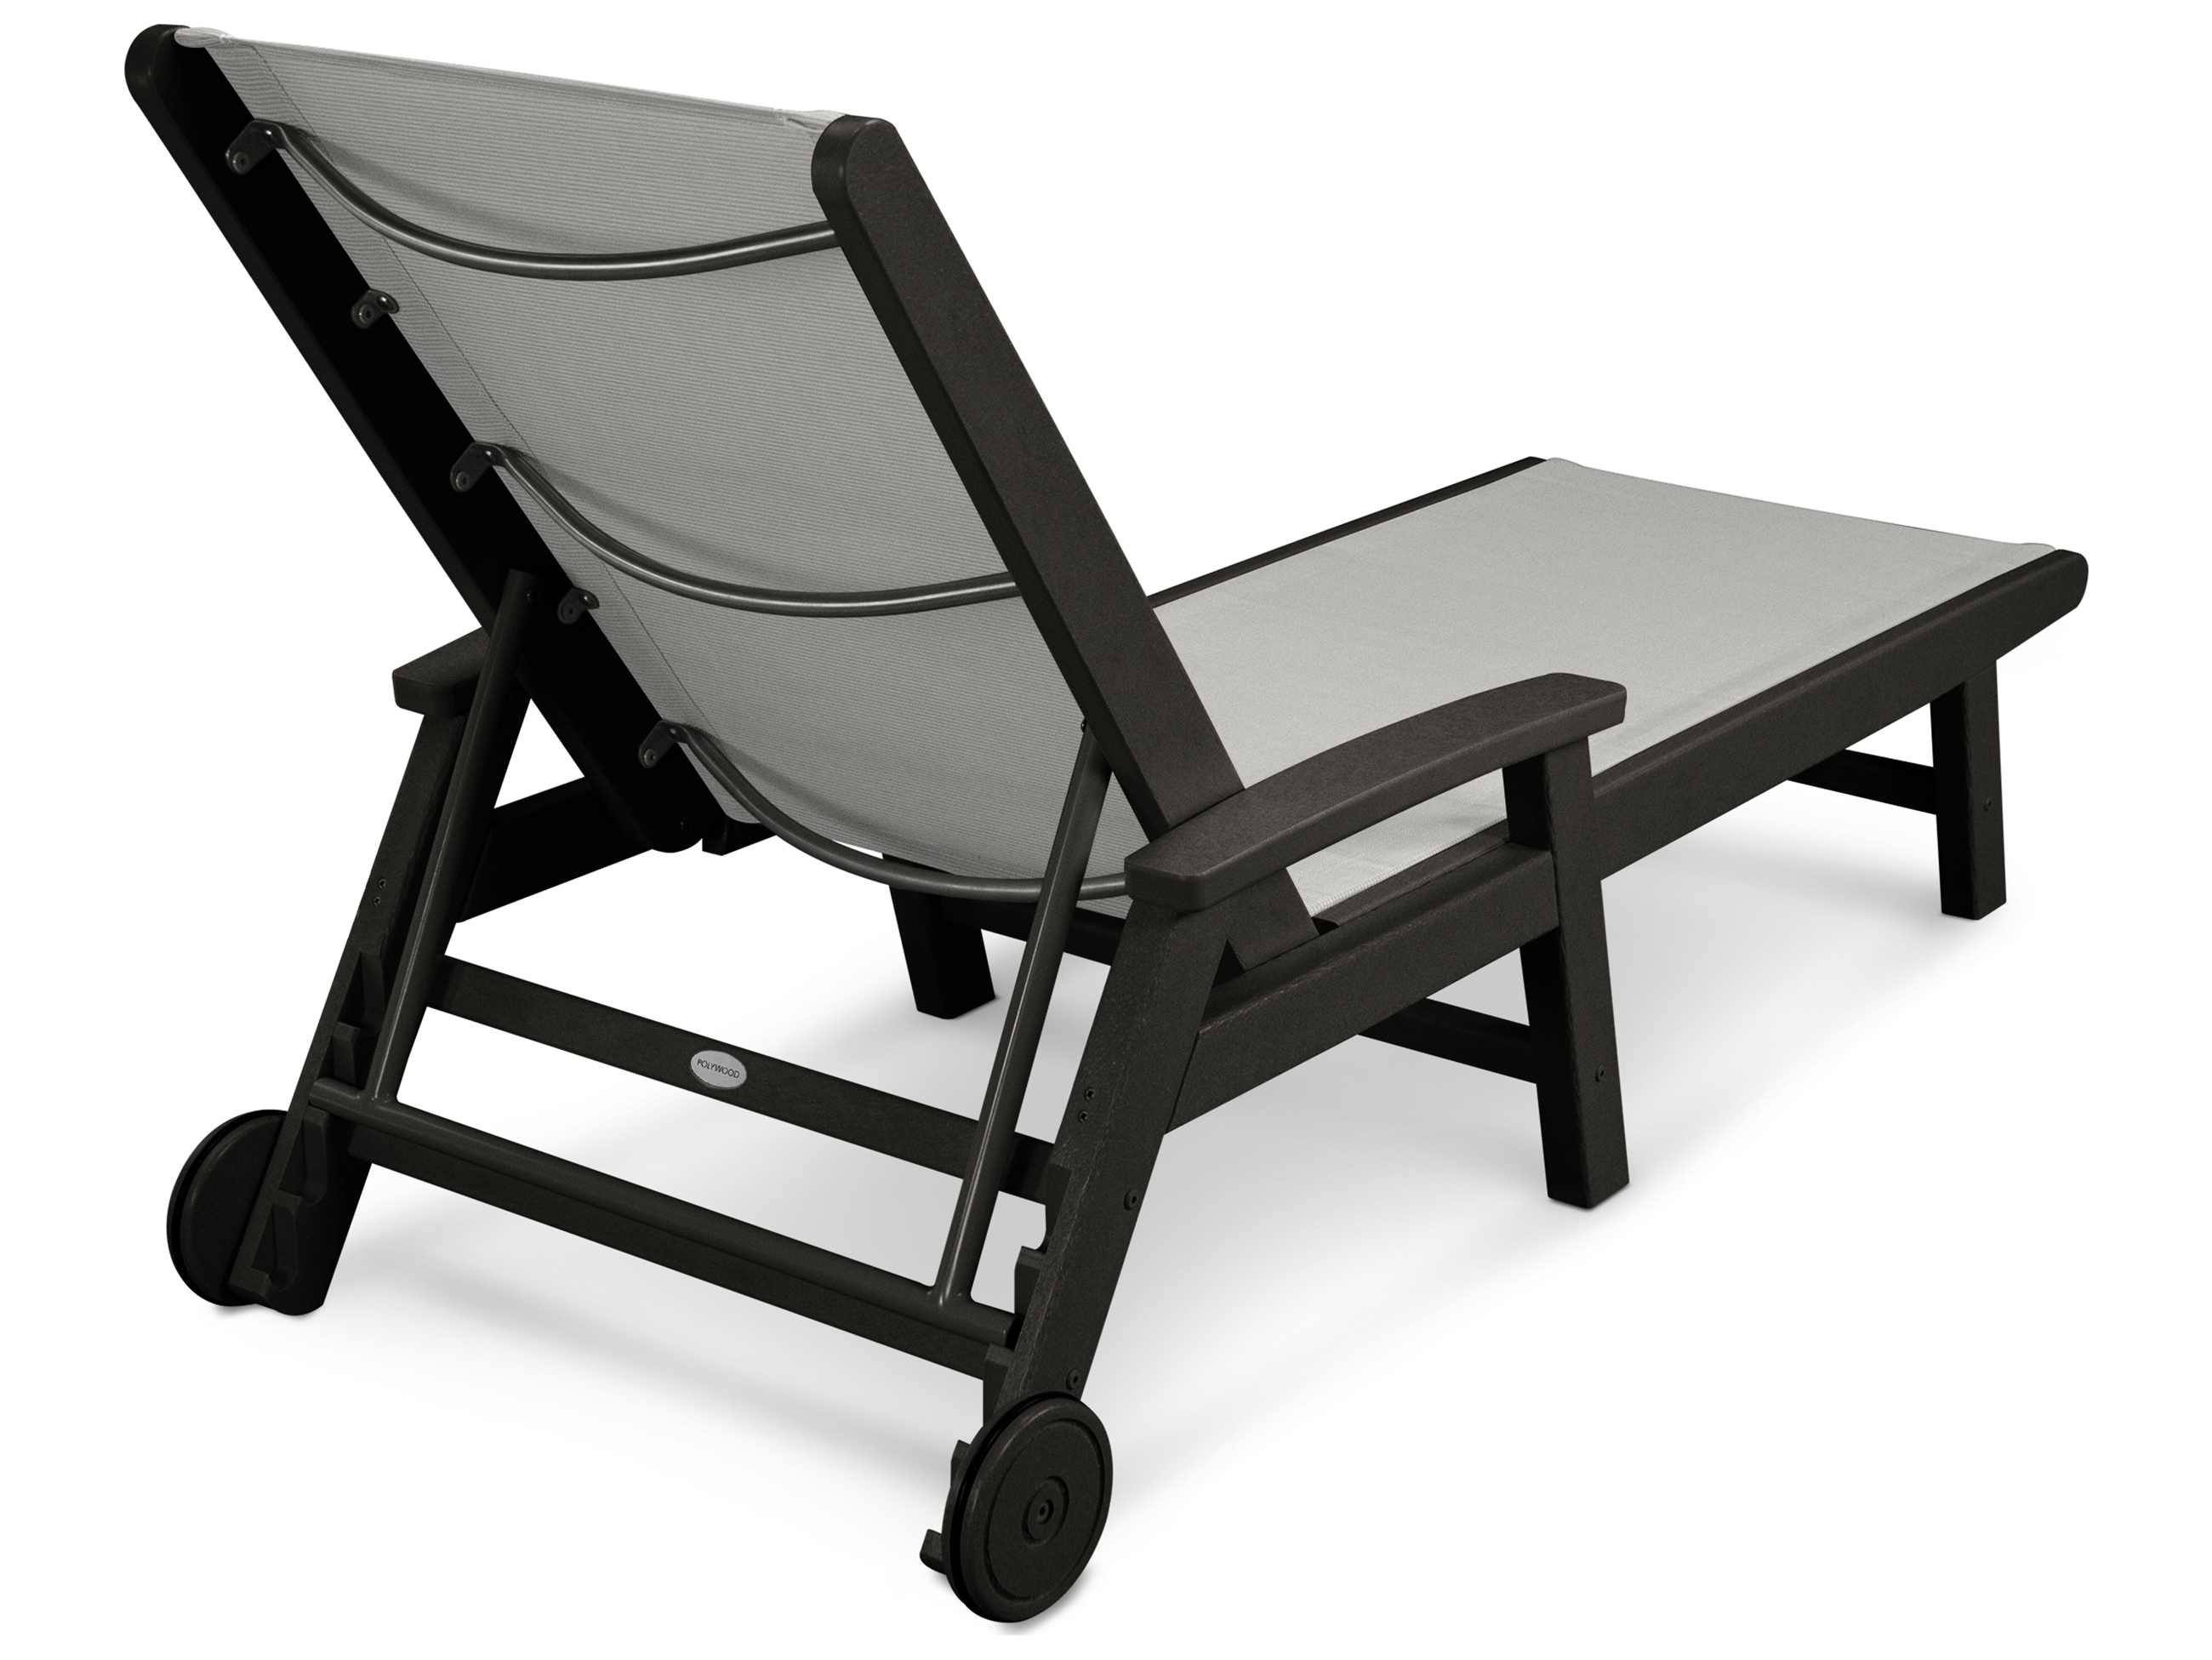 Polywood coastal sling aluminum chaise lounge sw2290 for Aluminium chaise lounge